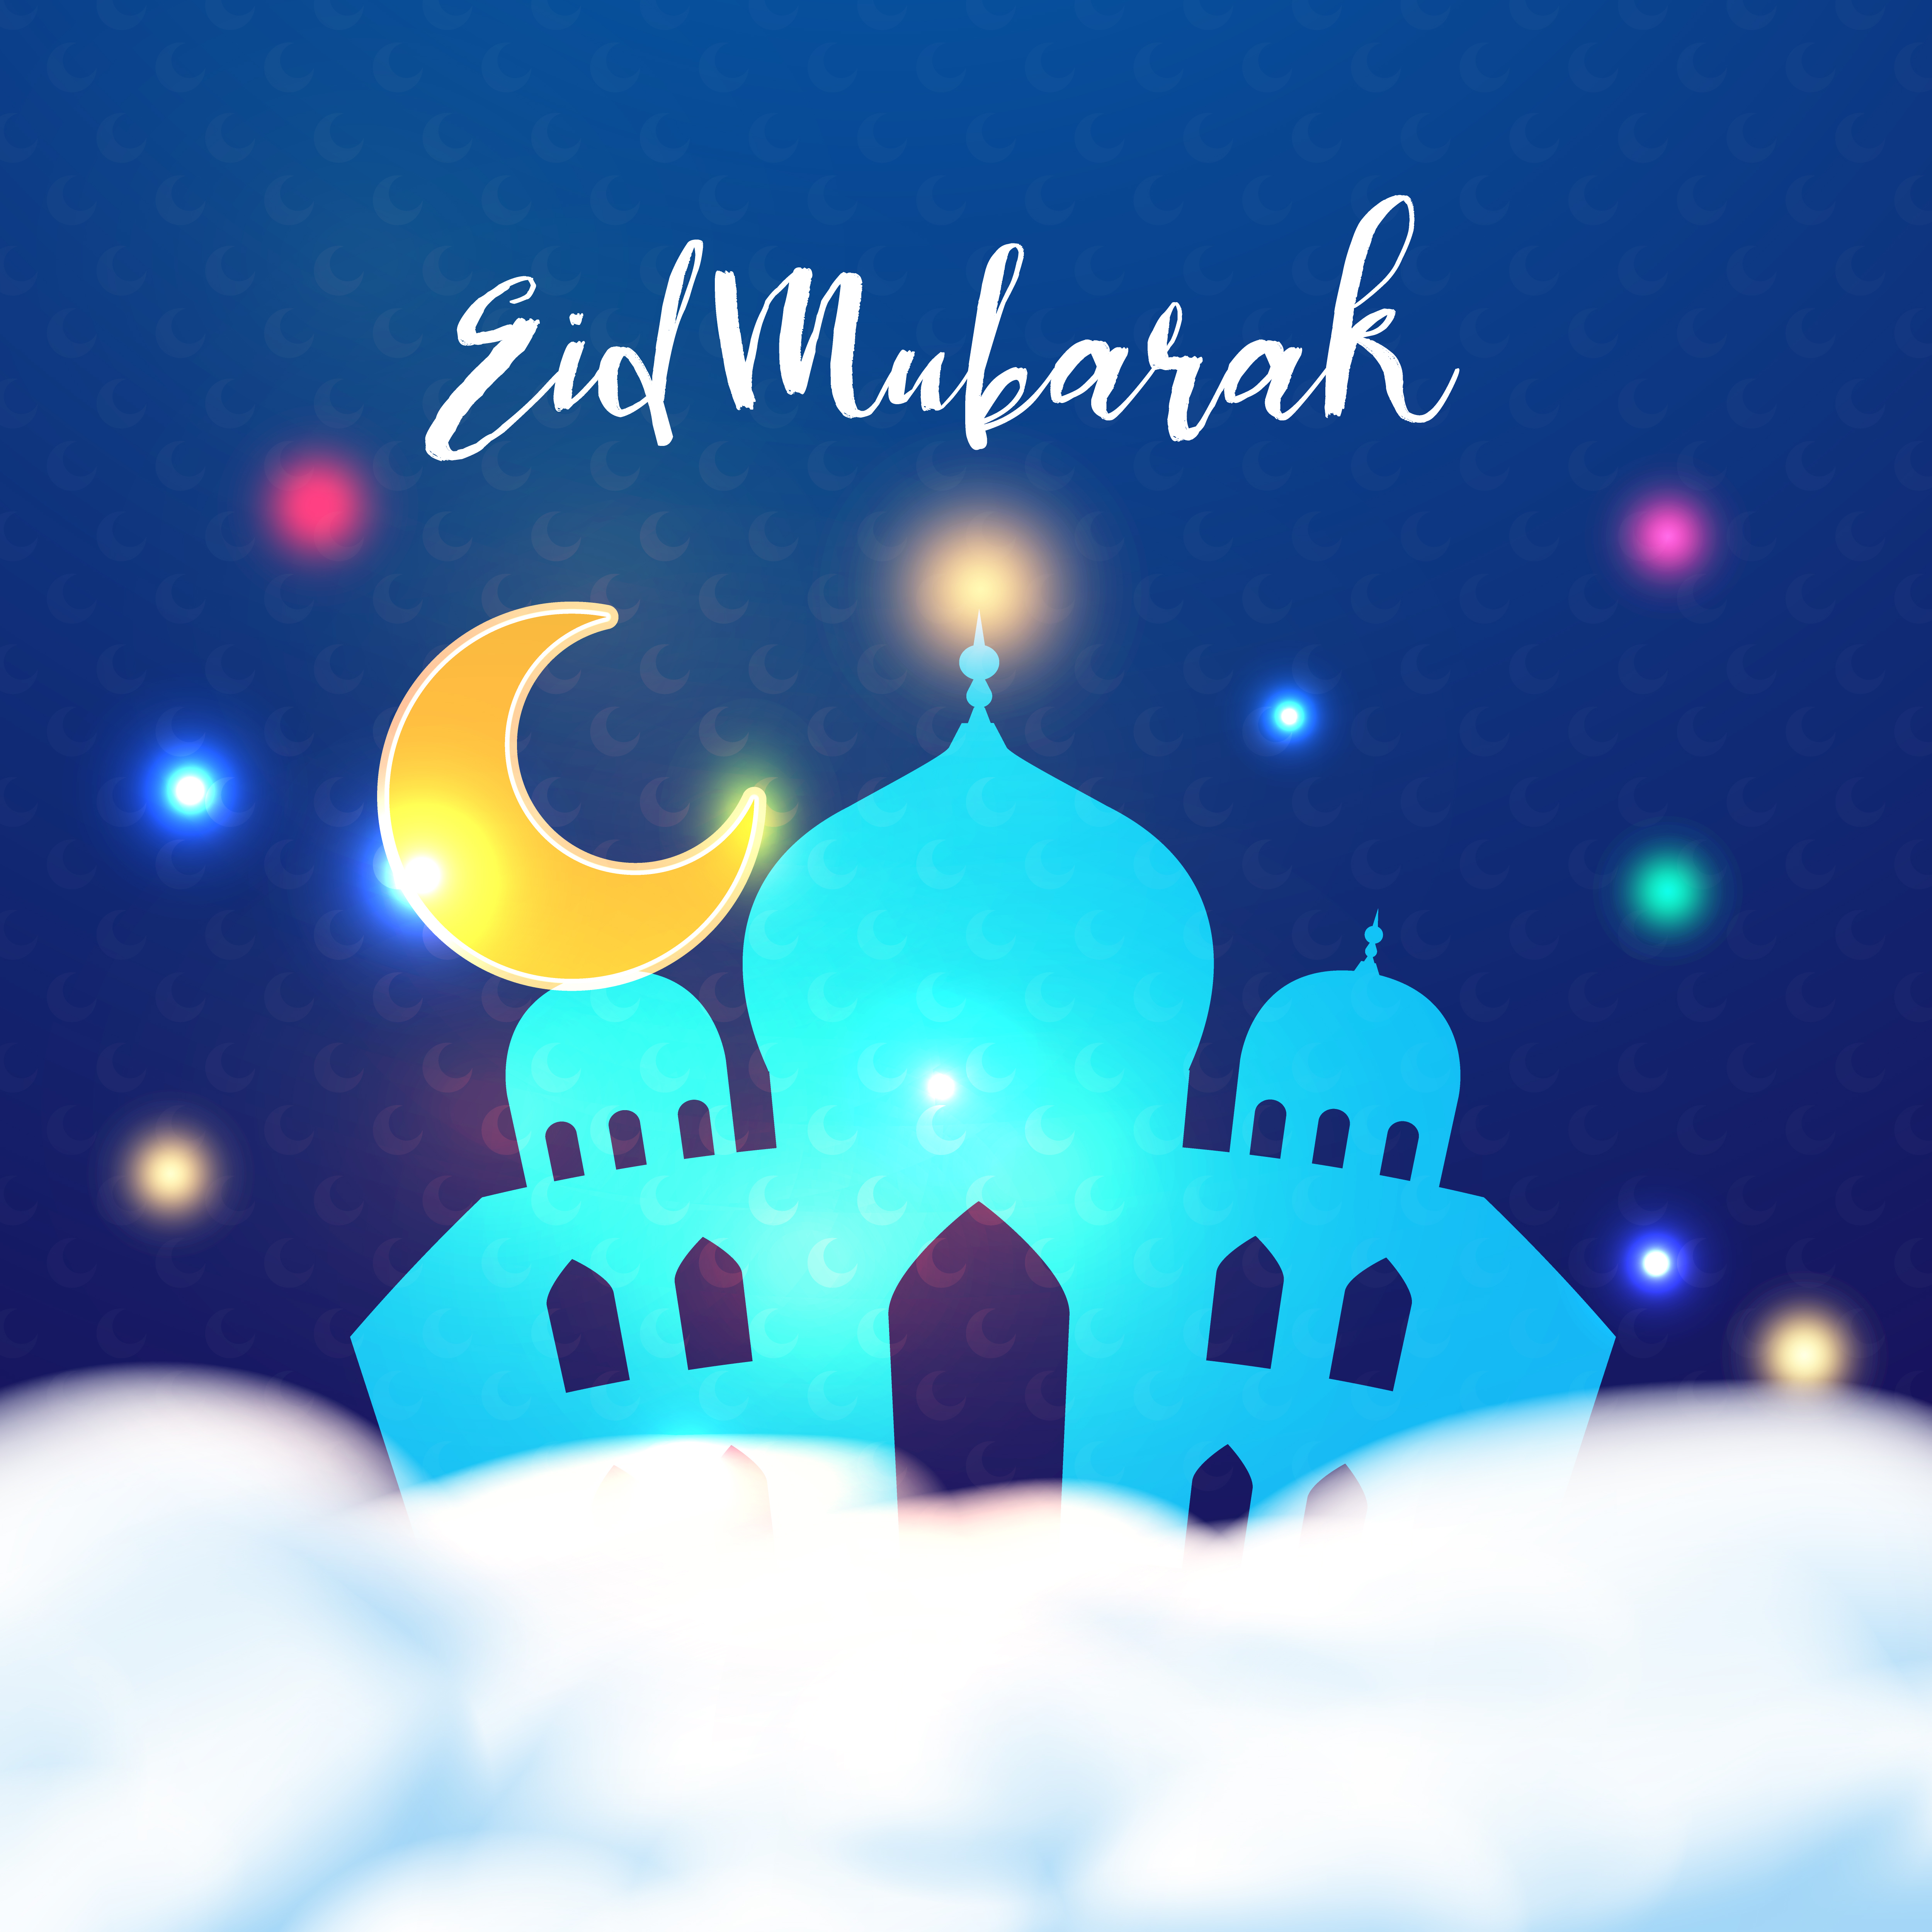 Happy Eid Mubarak In Ramadan Kareem Islamic Ceremony Colorful Design Background Template Traditional Arabic Festival Holiday And Cultural Concept Vector Illustration Decoration Art Poster Pattern 543726 Vector Art At Vecteezy